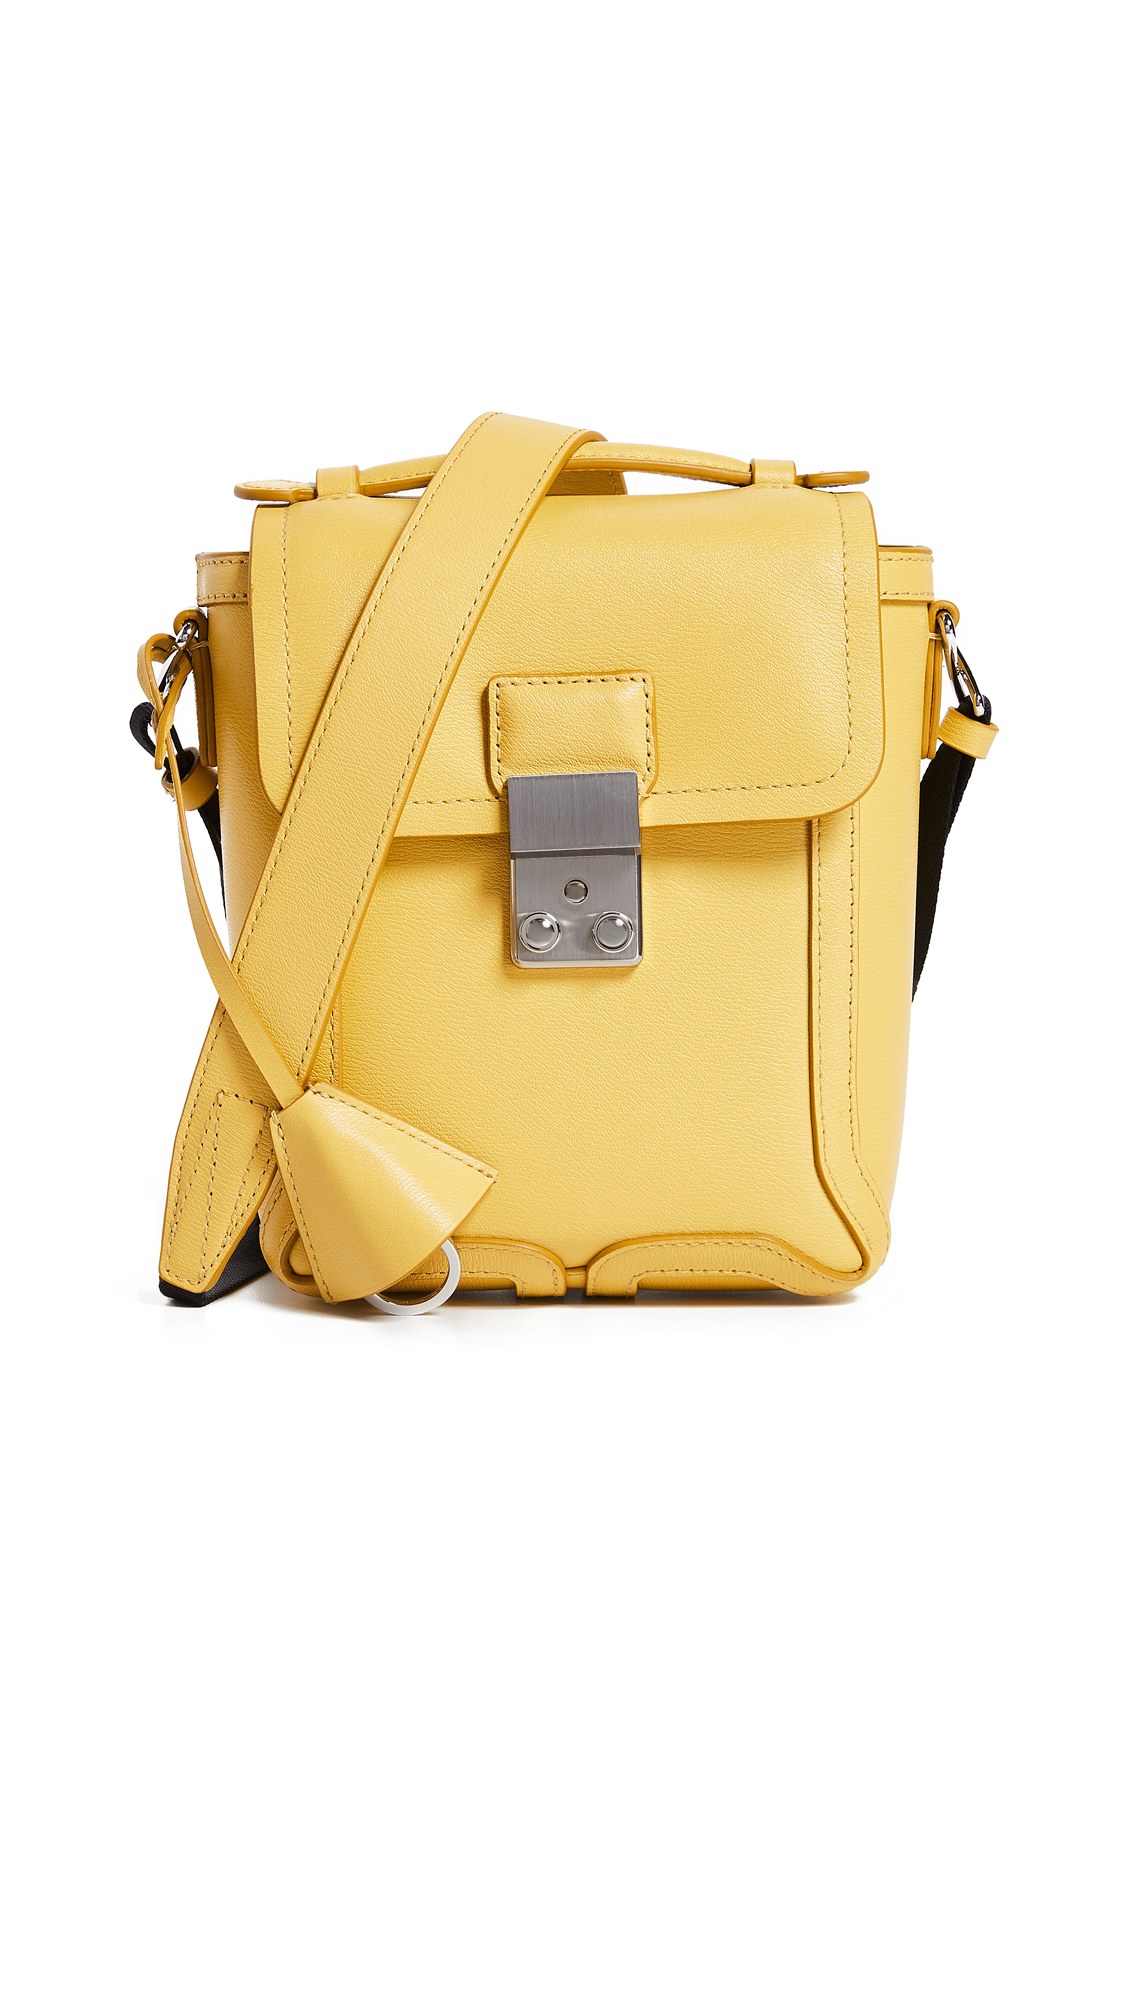 3.1 Phillip Lim Pashli Camera Bag - Lemon